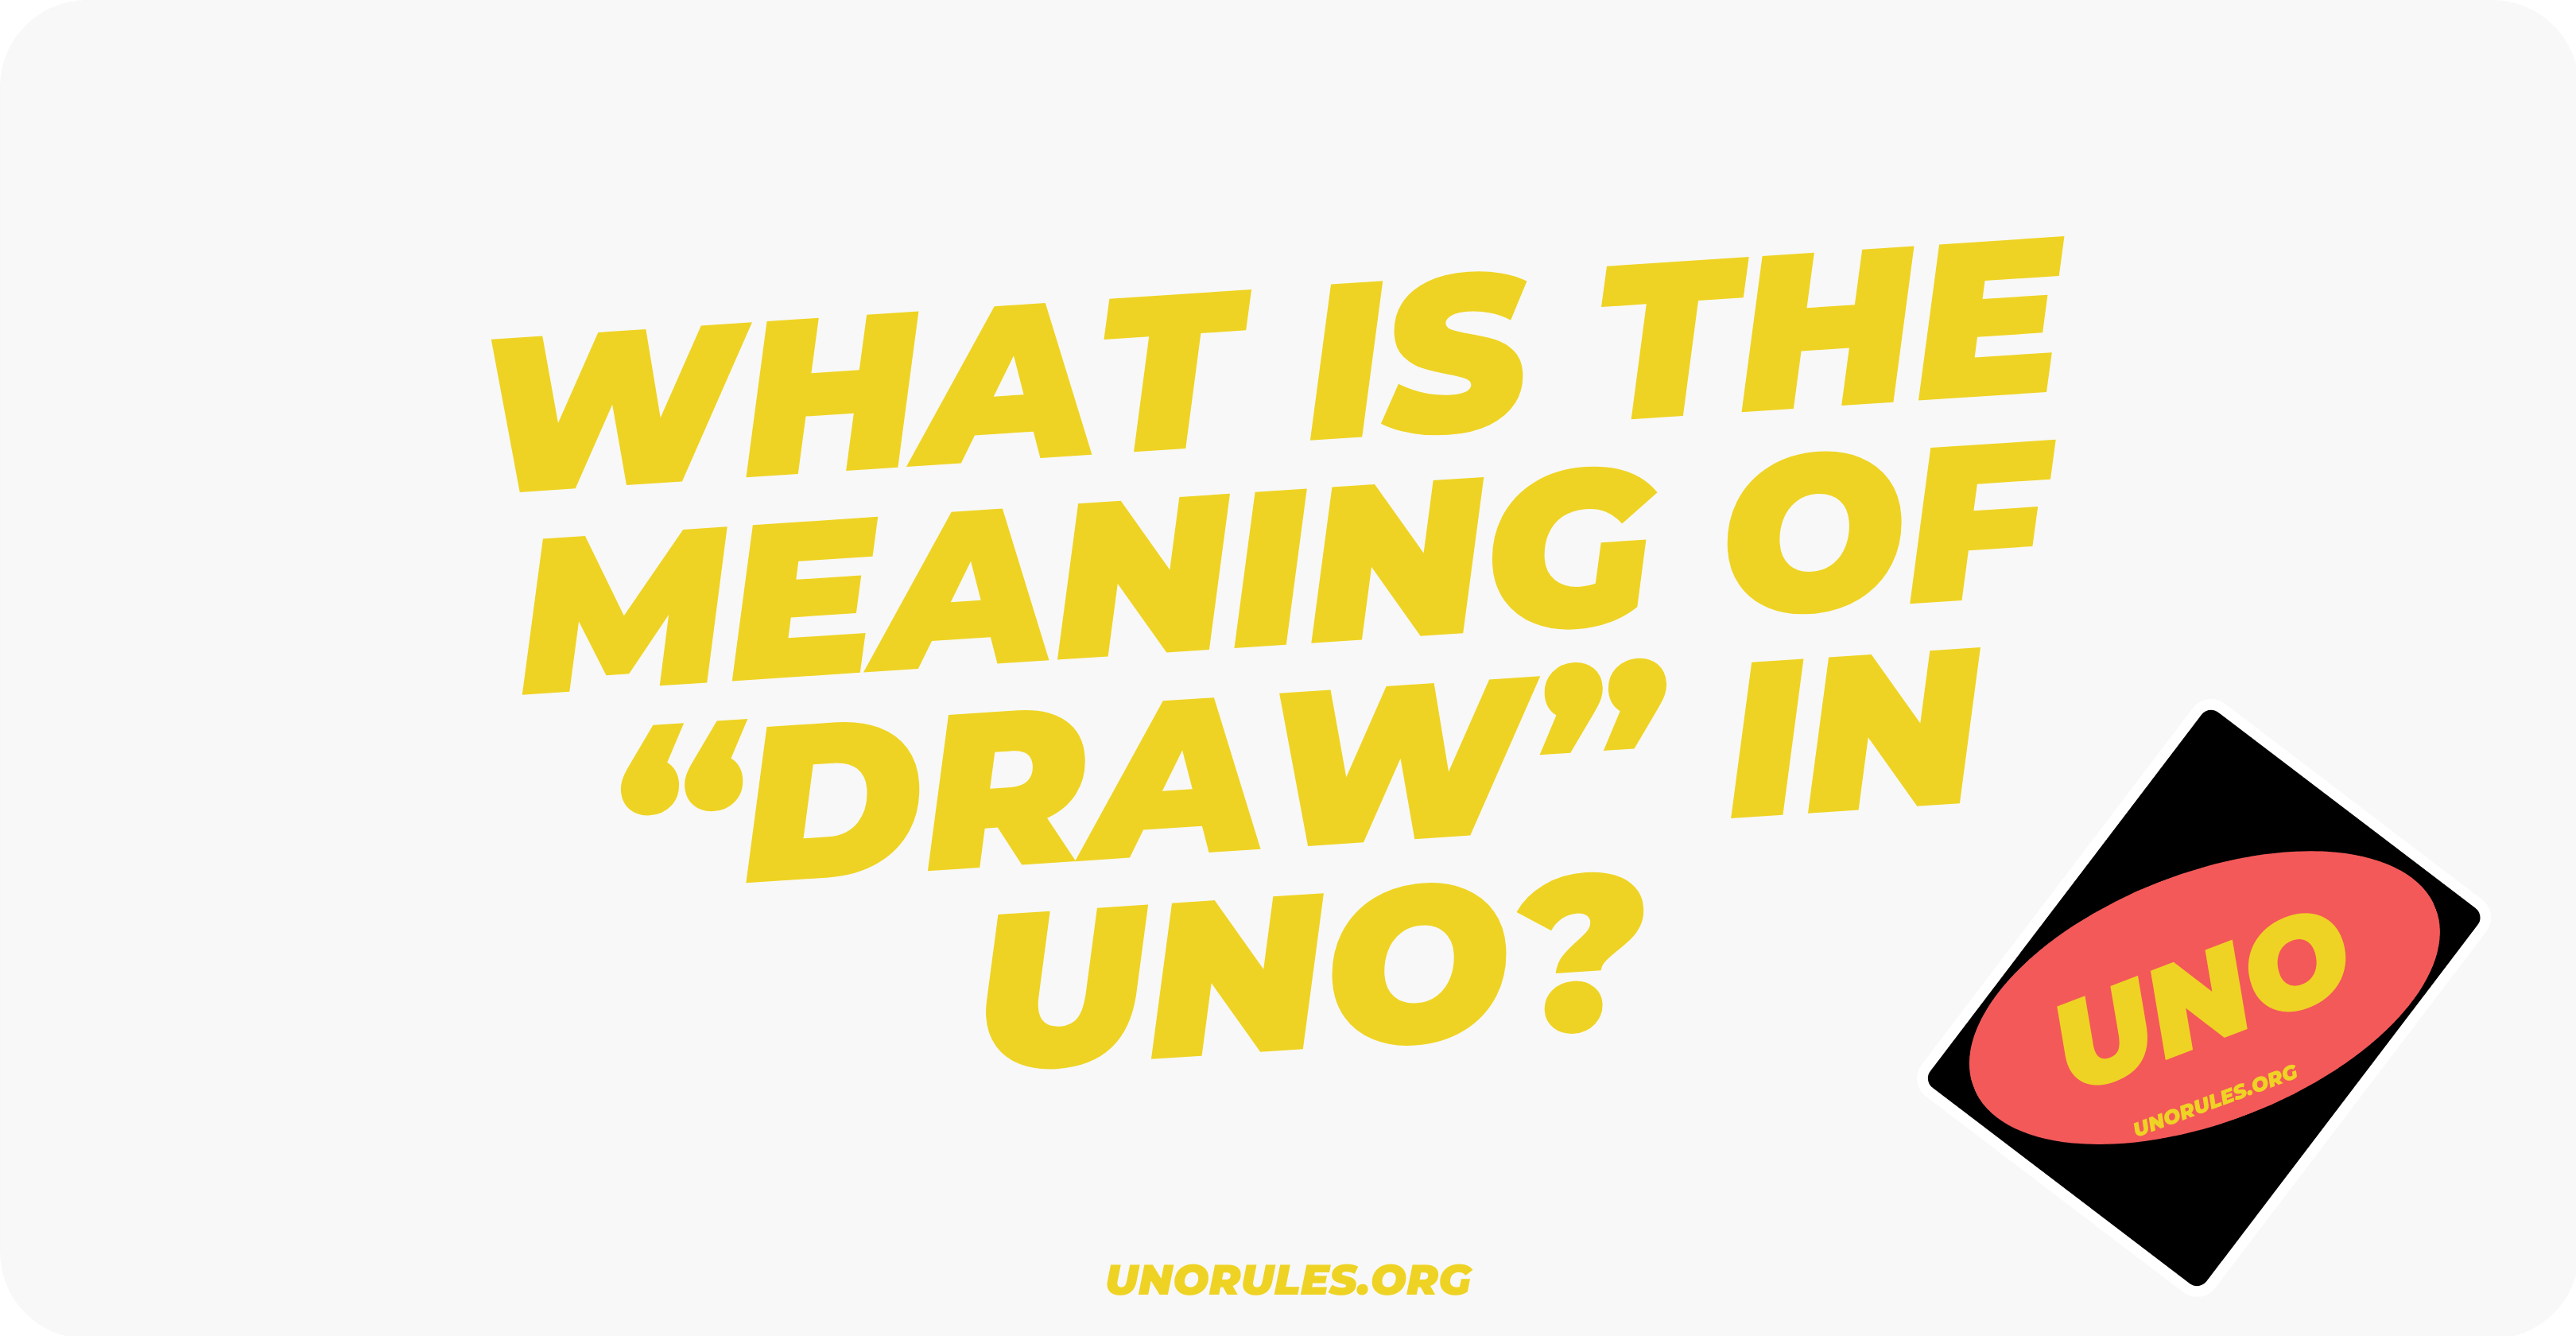 What is the meaning of draw